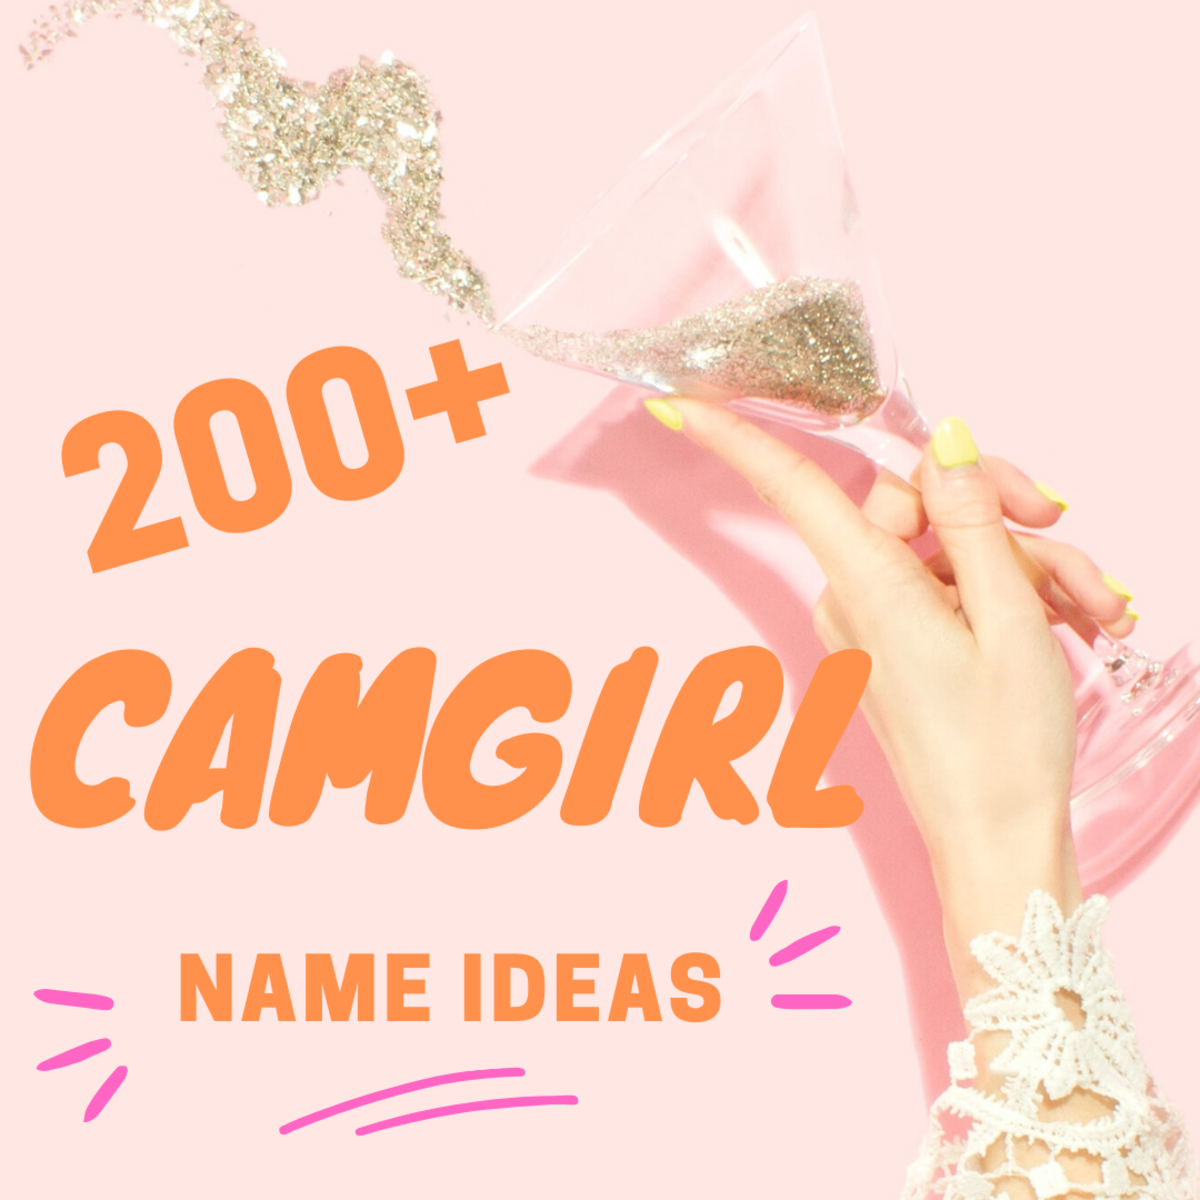 Cam-Girl Name Ideas to Get You Noticed